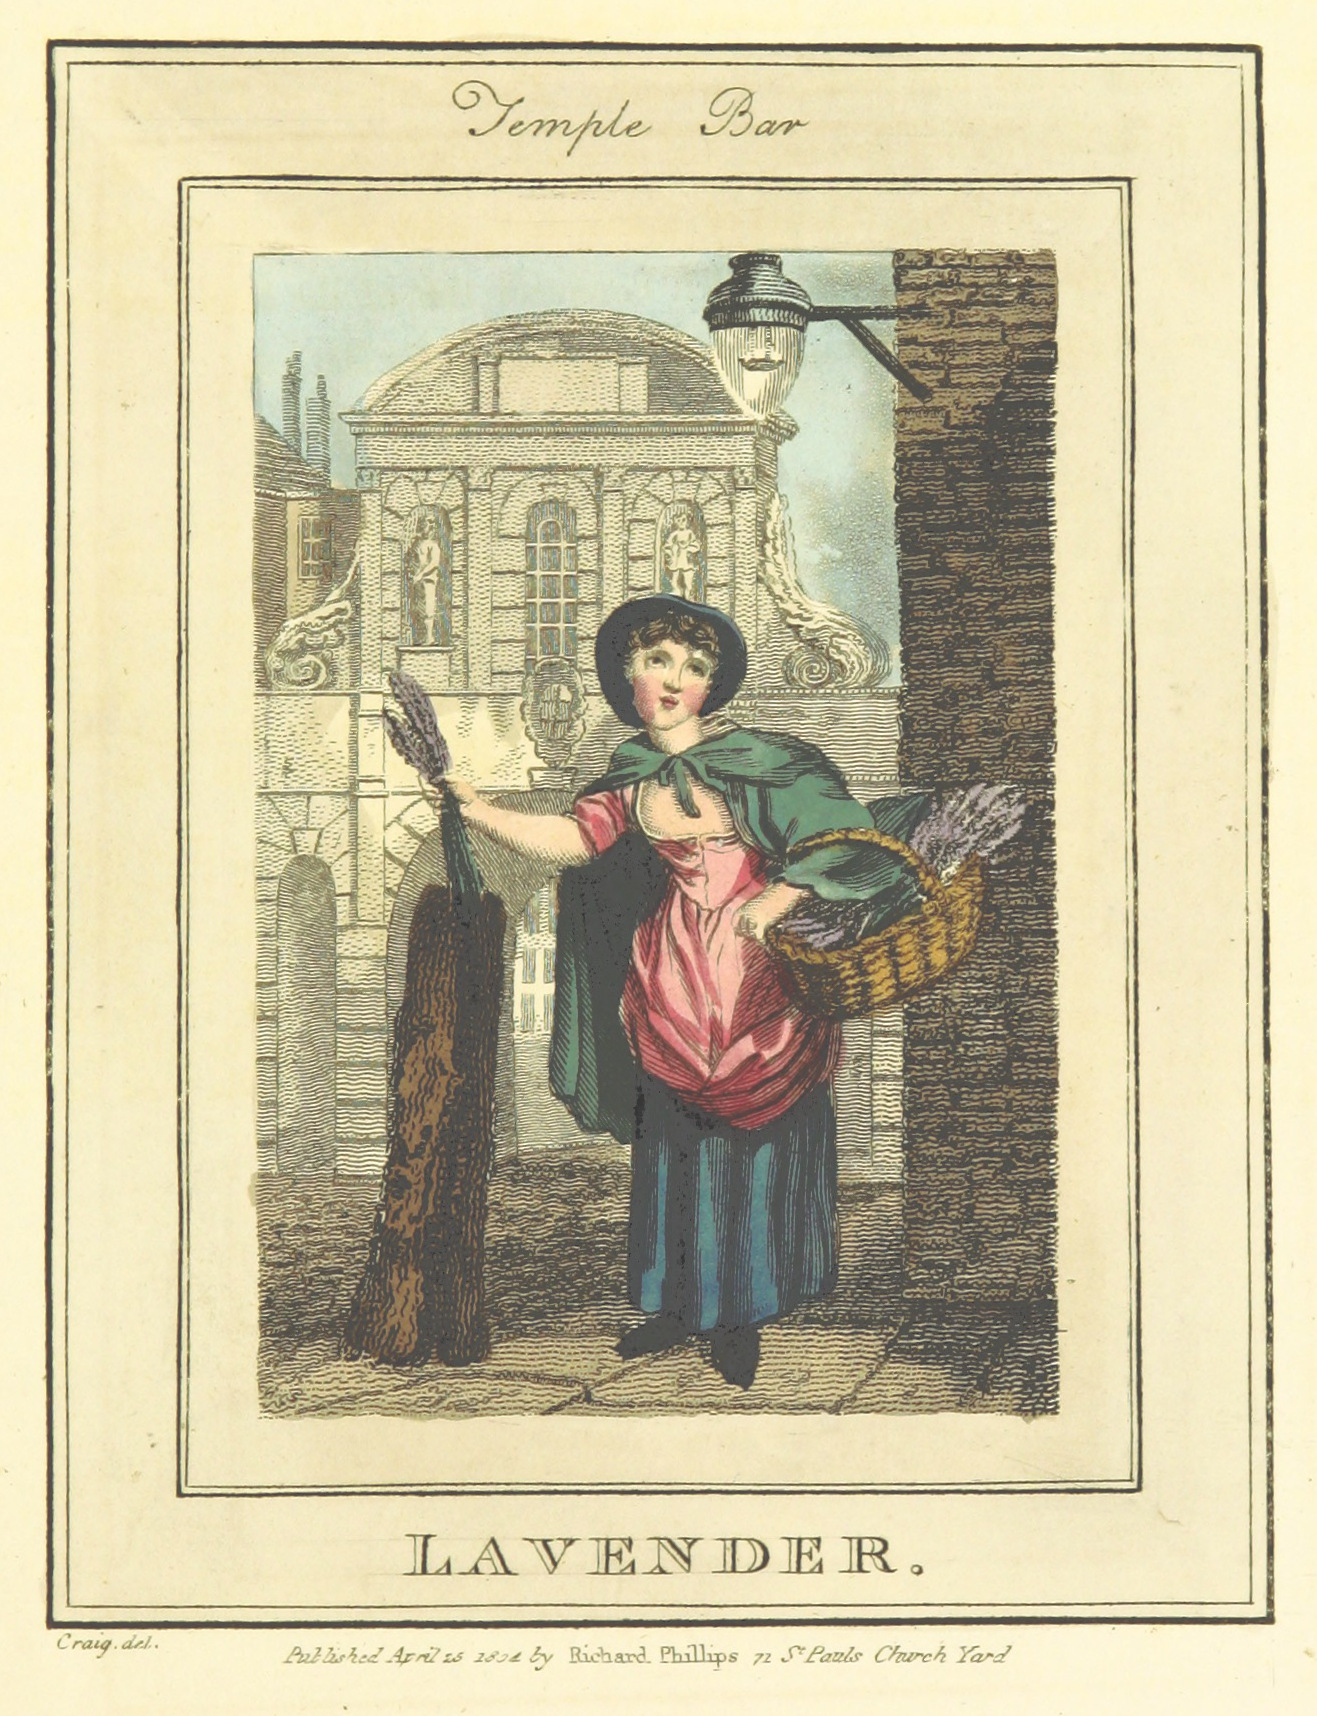 Phillips(1804)_p617_-_Temple_Bar_-_Lavender